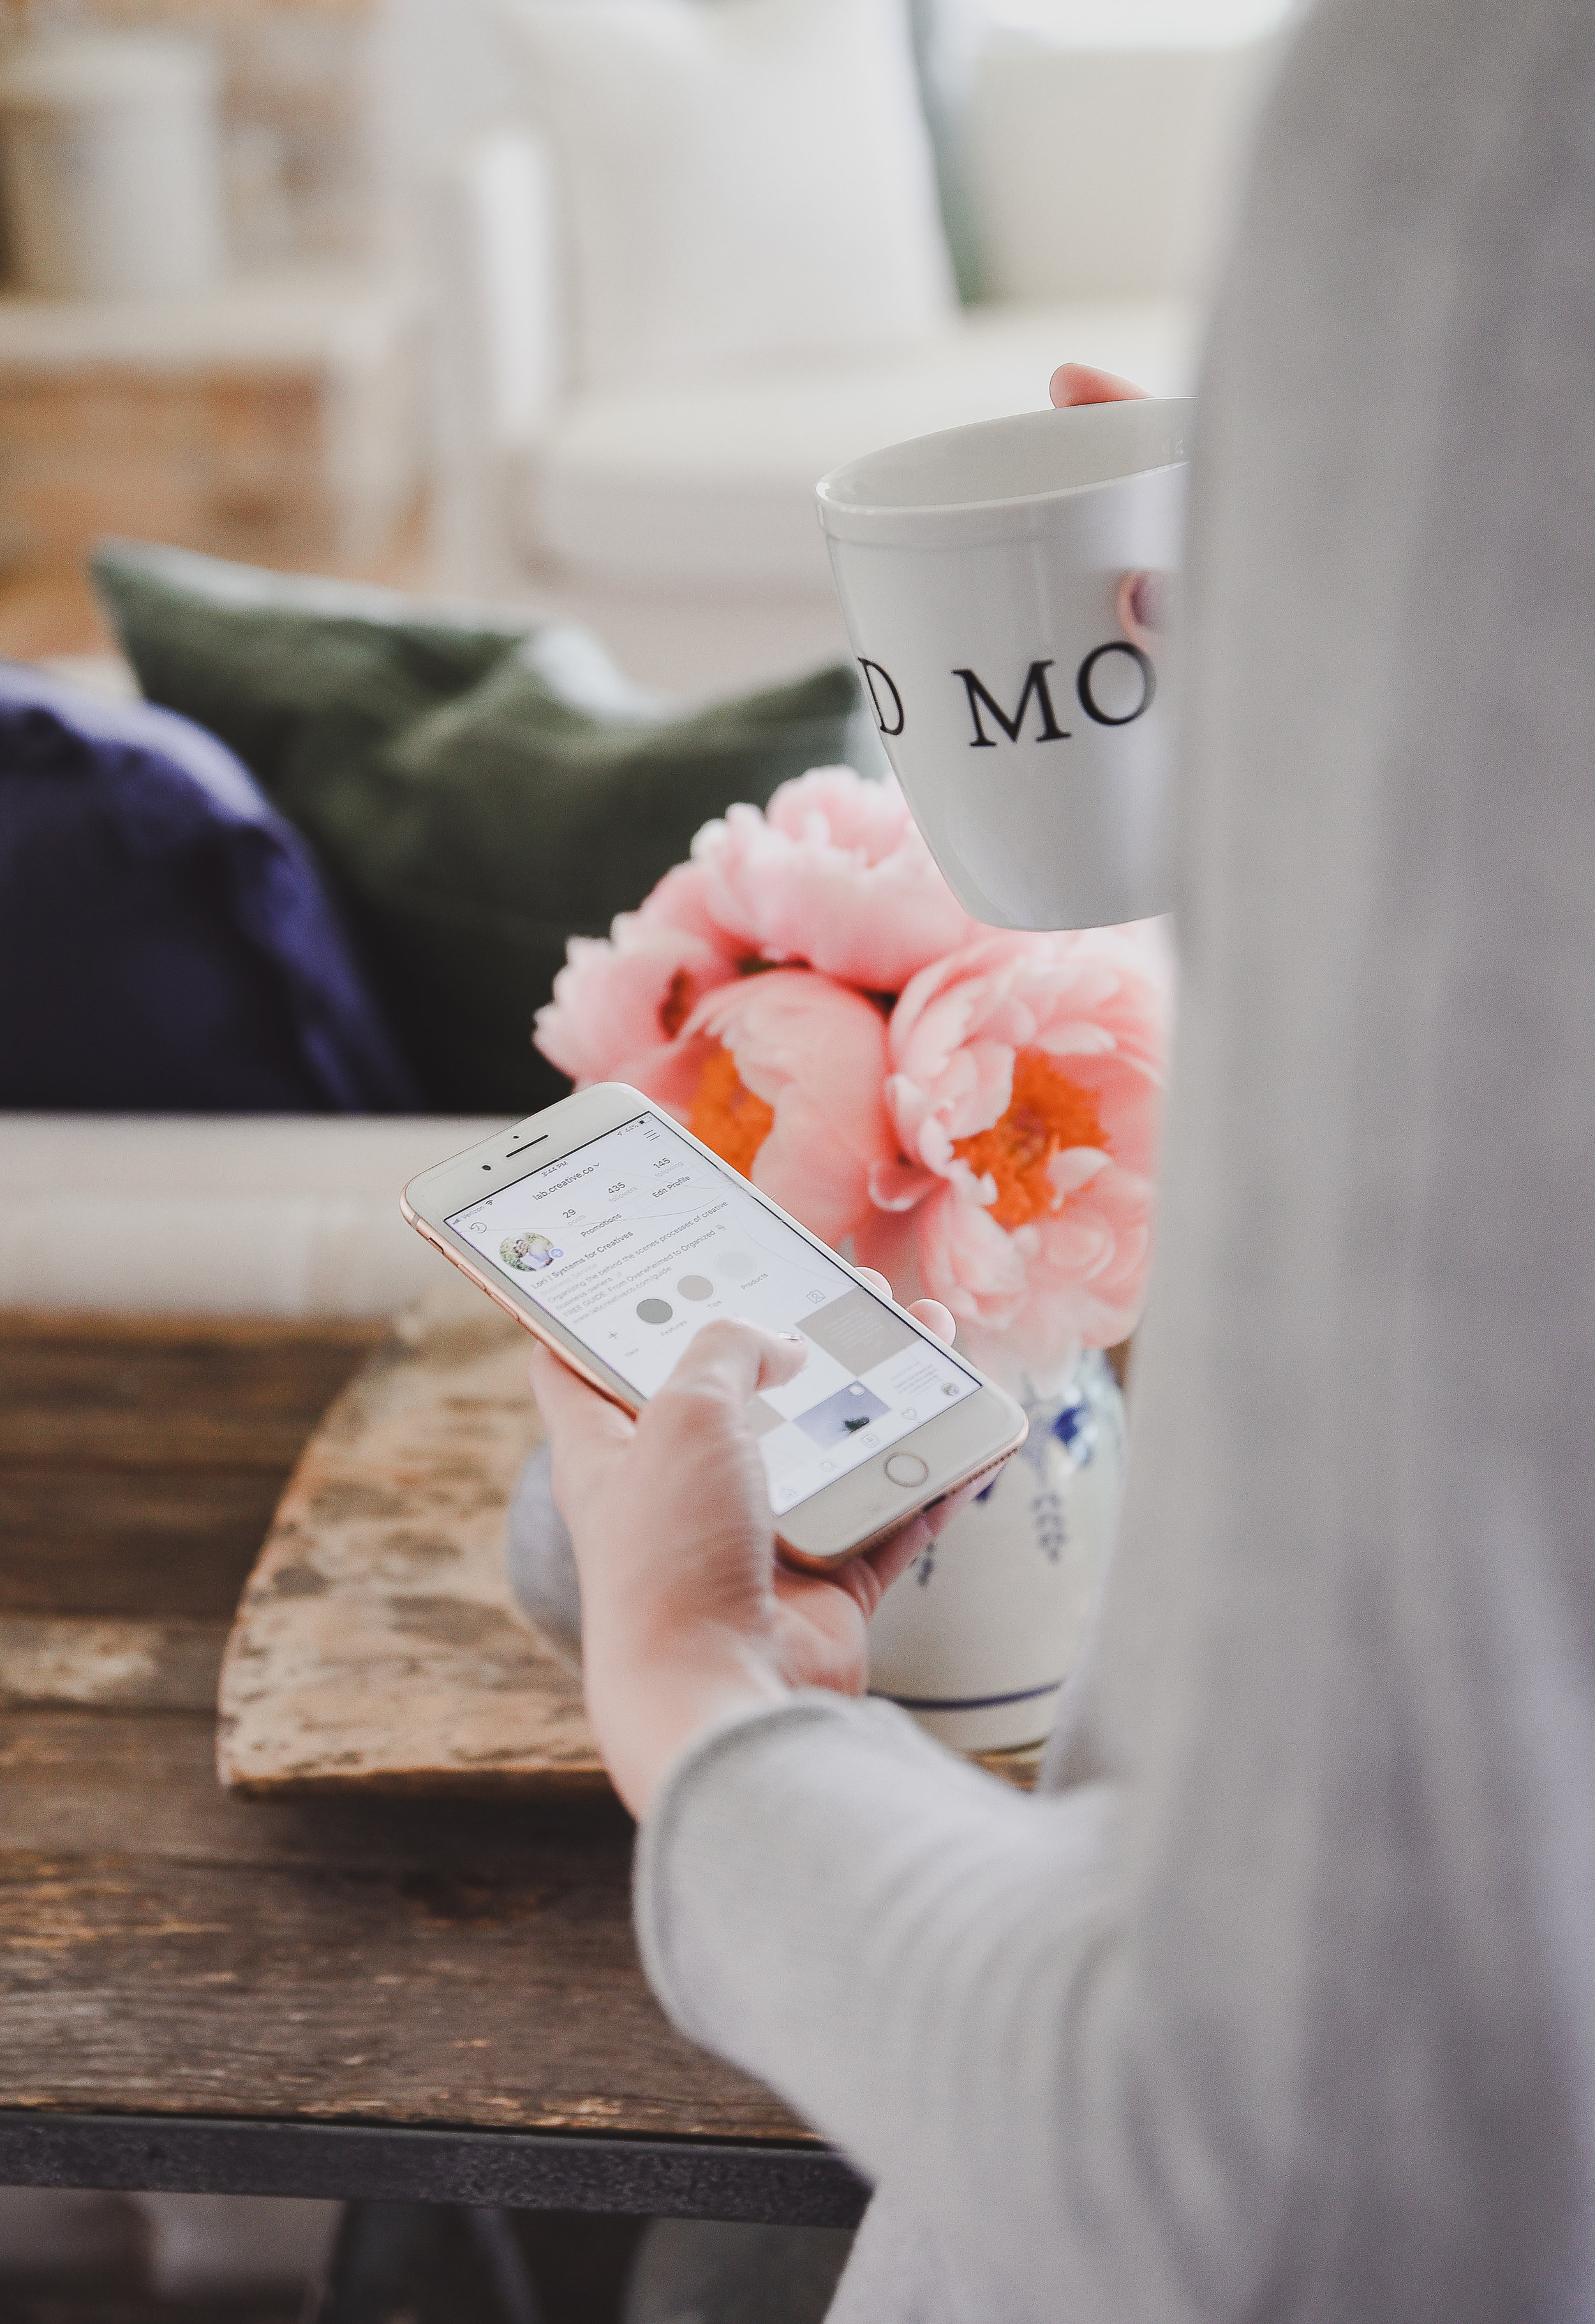 How to get Instagram followers - growing an instagram account in 2019! Tips and tricks for growing social media. #boxwoodavenue #blogging #socialmediatips